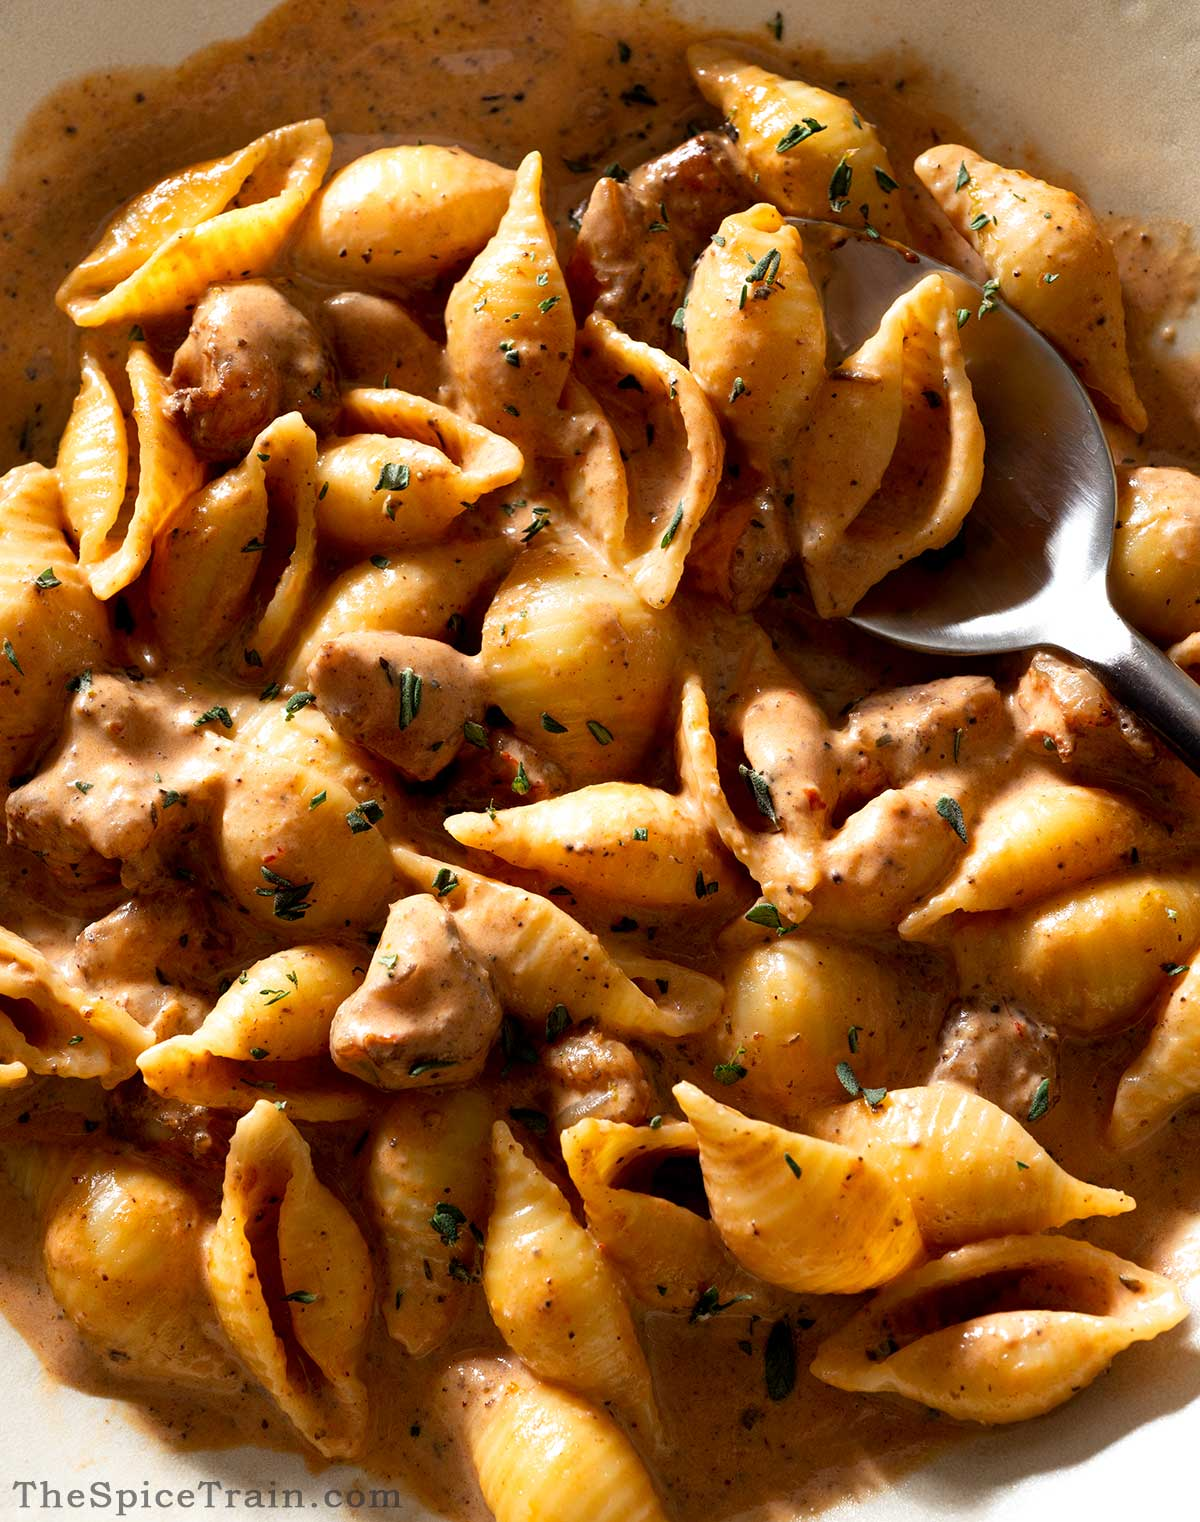 Pasta with a creamy shrimp tomato sauce on a plate.